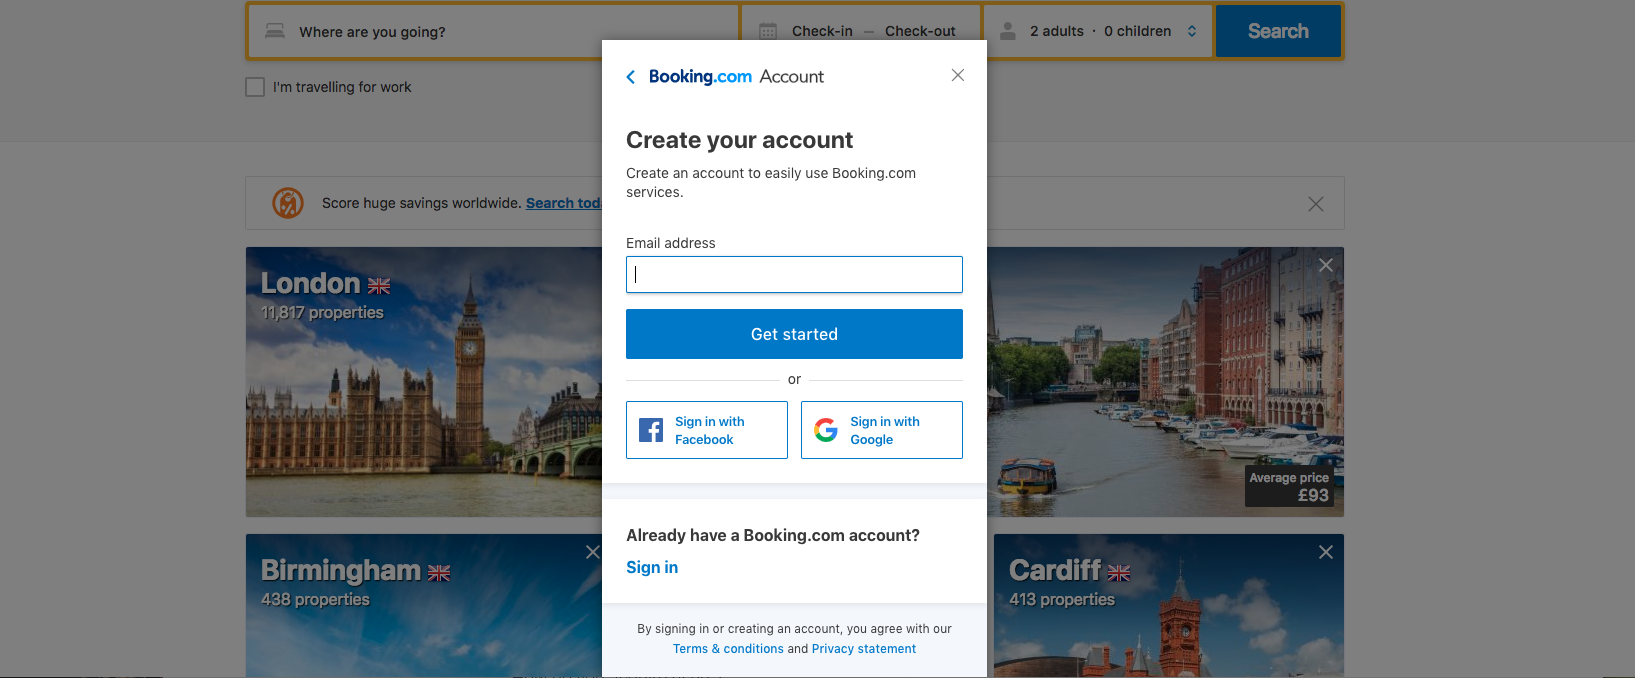 The create an account screen for booking.com